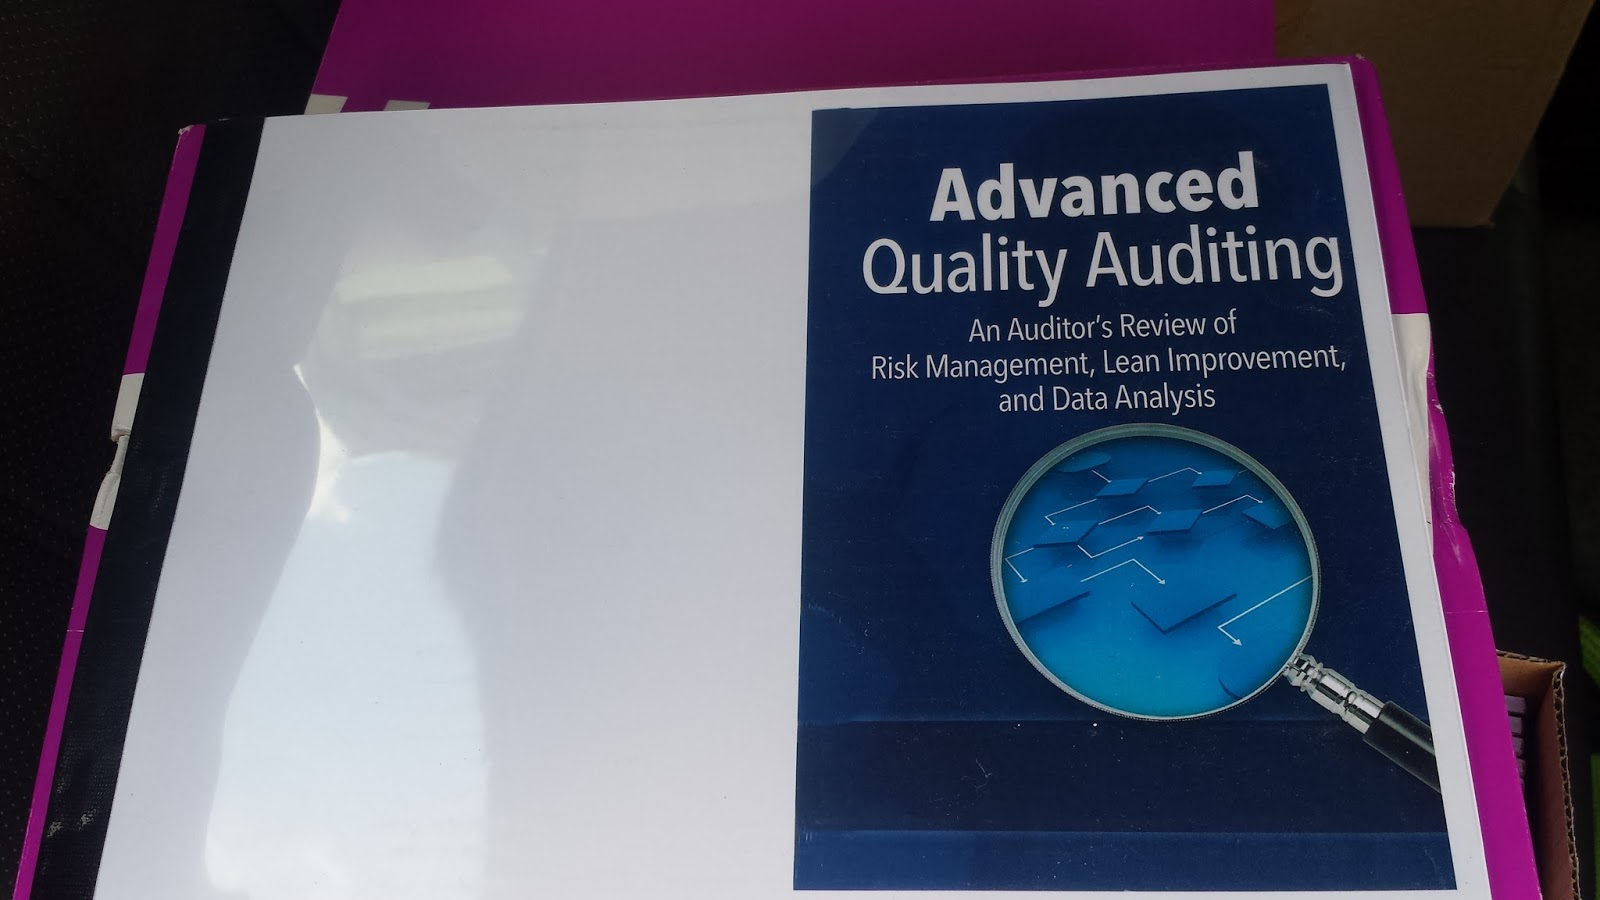 an analysis of quality or excellence The purpose of this paper is to investigate core themes in the quality management research area through a quantitative analysis of research papers published in the journal total quality management and business excellence the study analyses the bibliographies in the published papers in addition to.